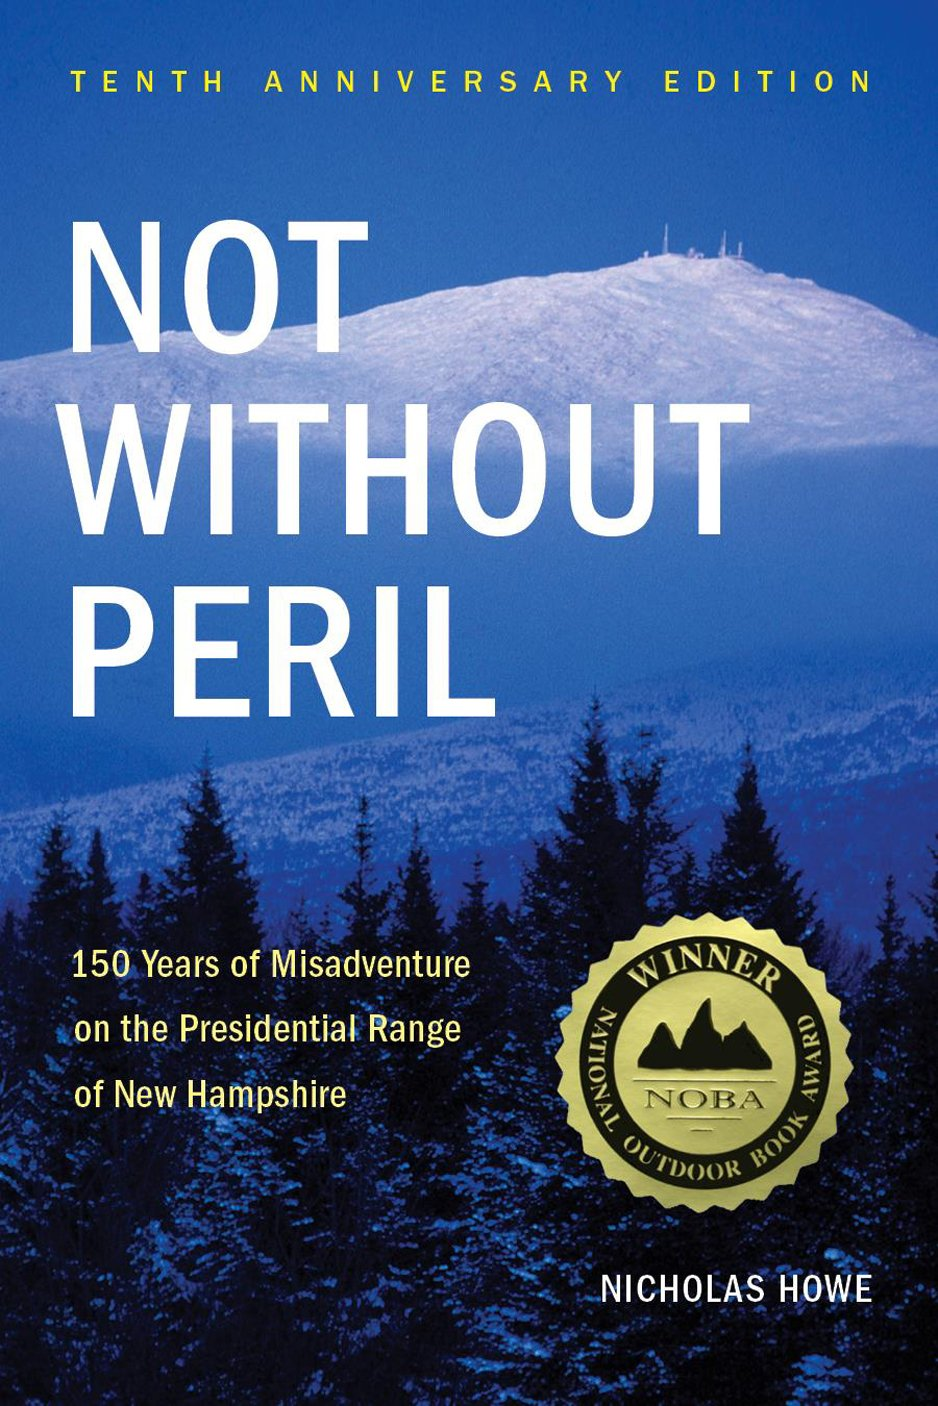 Download Not Without Peril: 150 Years Of Misadventure On The Presidential Range Of New Hampshire 